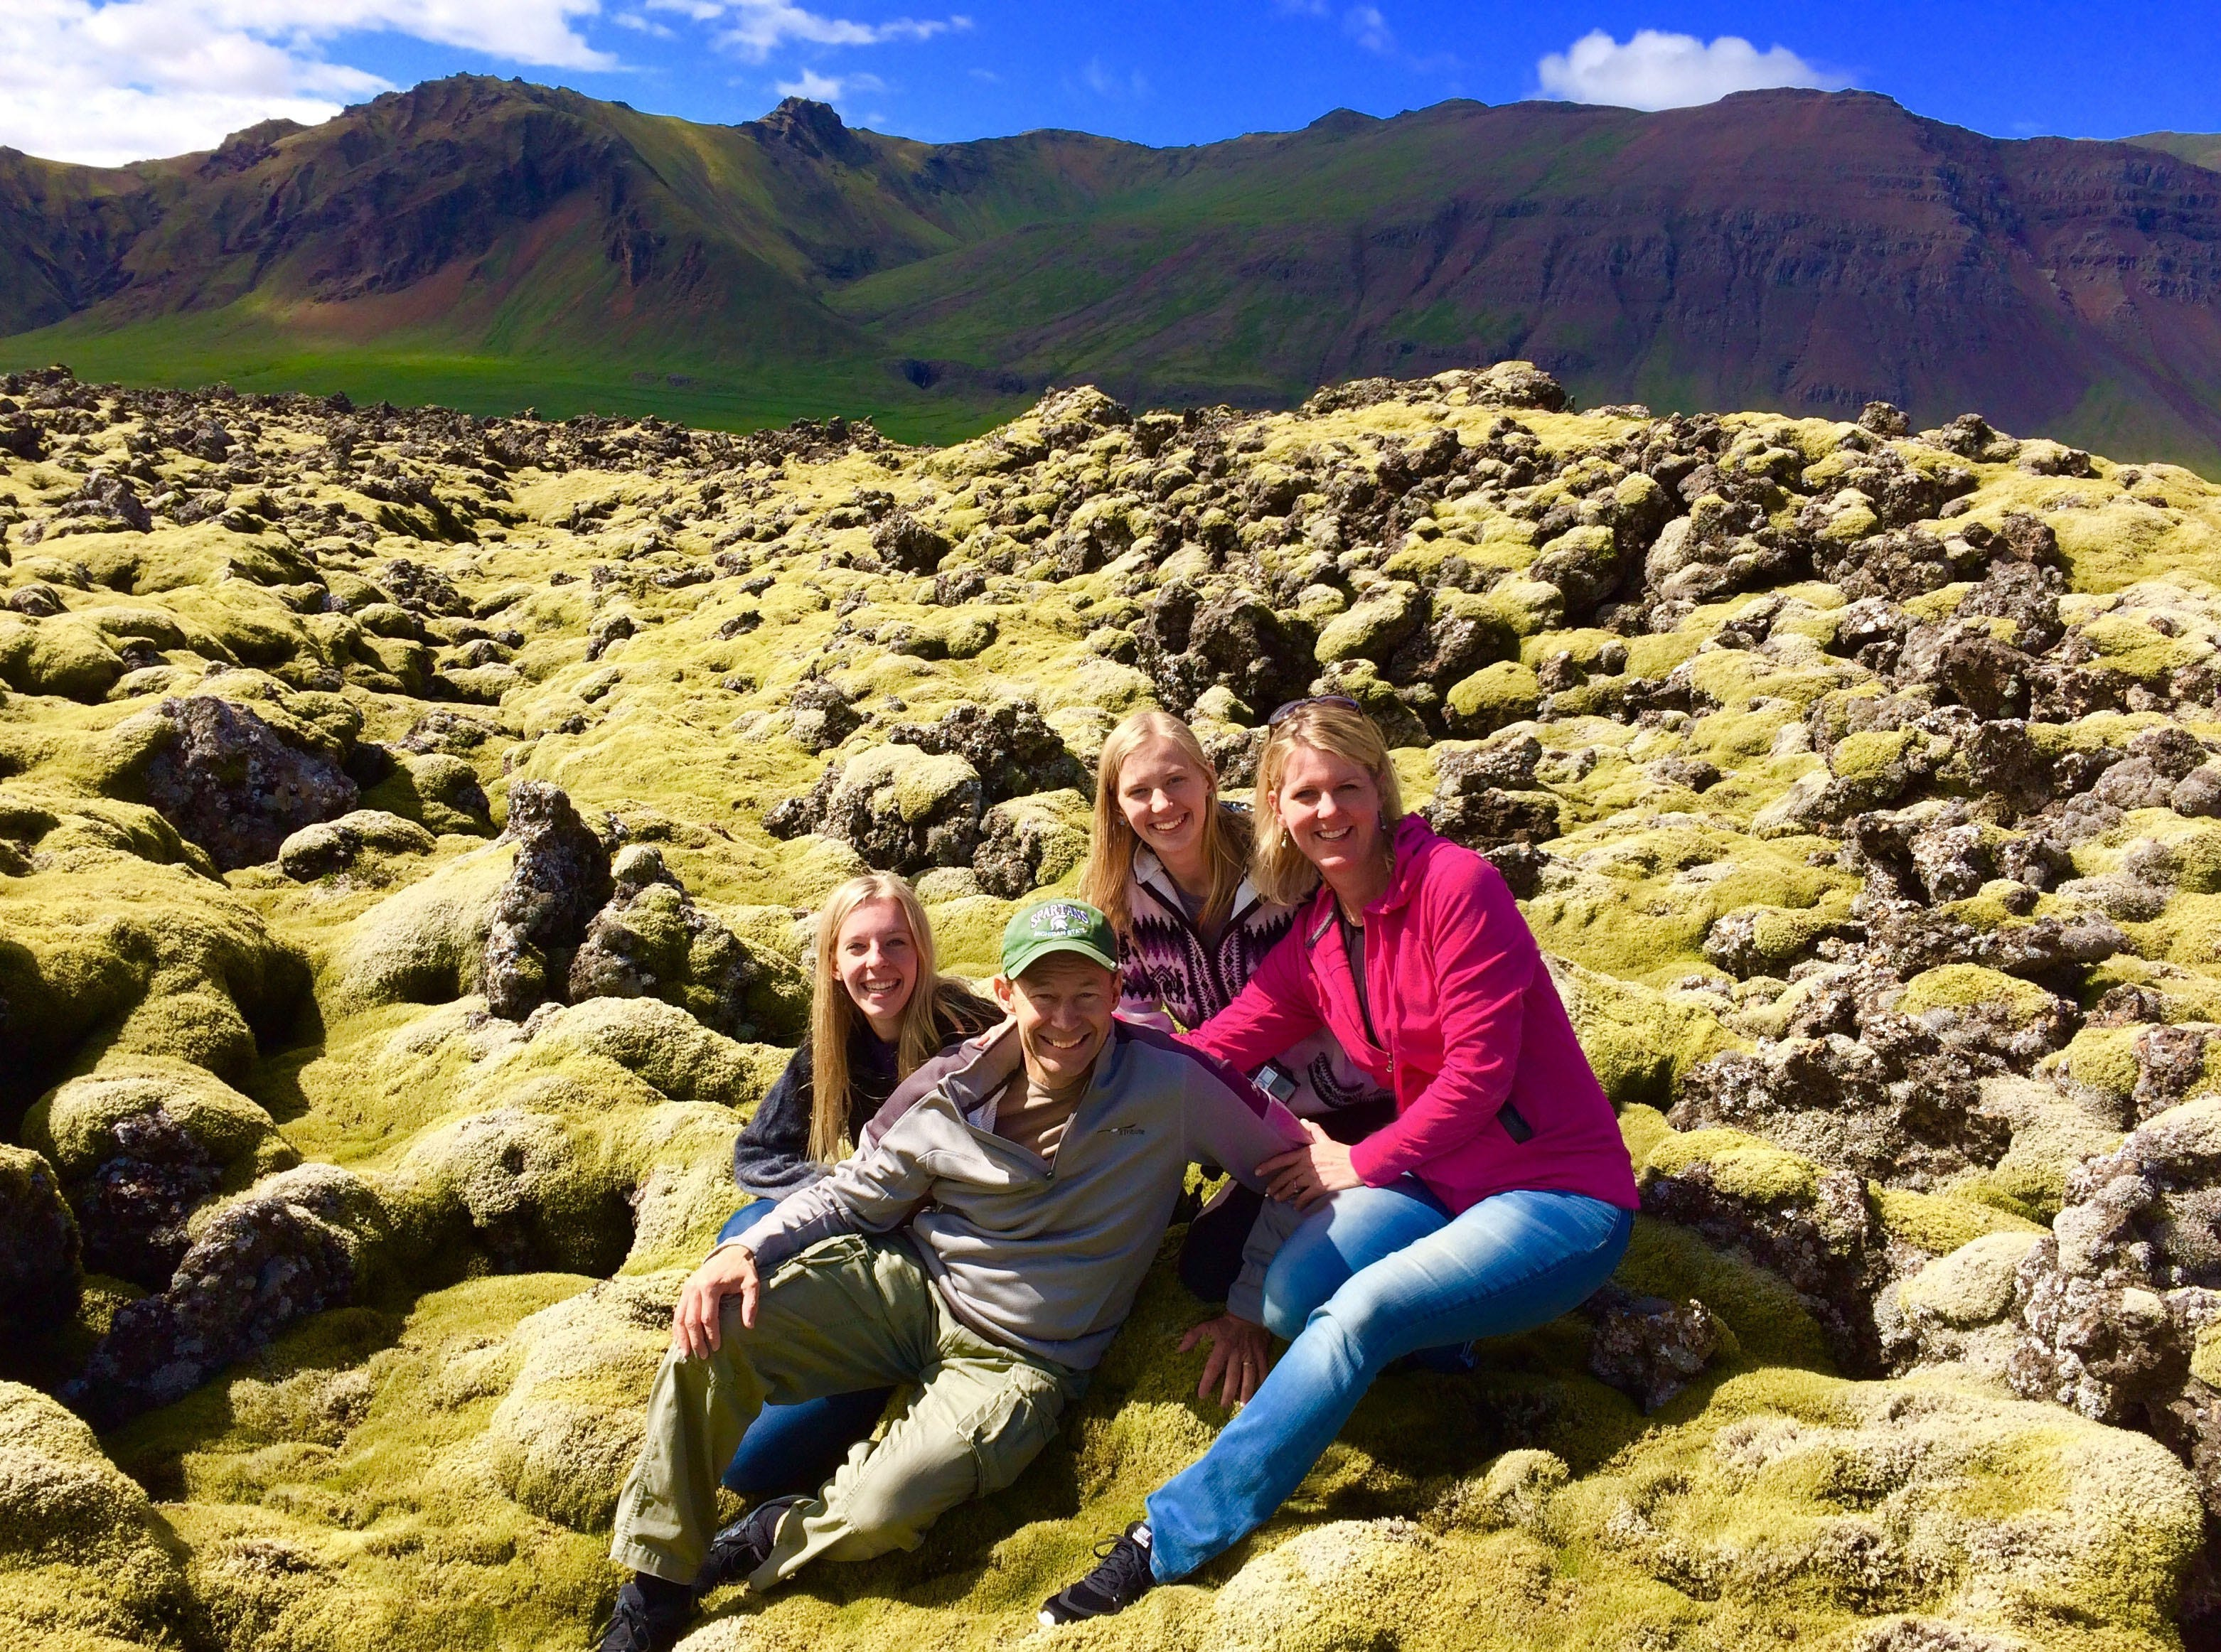 Ed McKenna (front), pictured during a family trip to Iceland, recently traveled solo to see the Northern Lights in northern Finland. Now, he wants the rest of his family to accompany him for the sequel. Also pictured with Ed are (from left) daughters Melanie, Jillian and wife Alison.